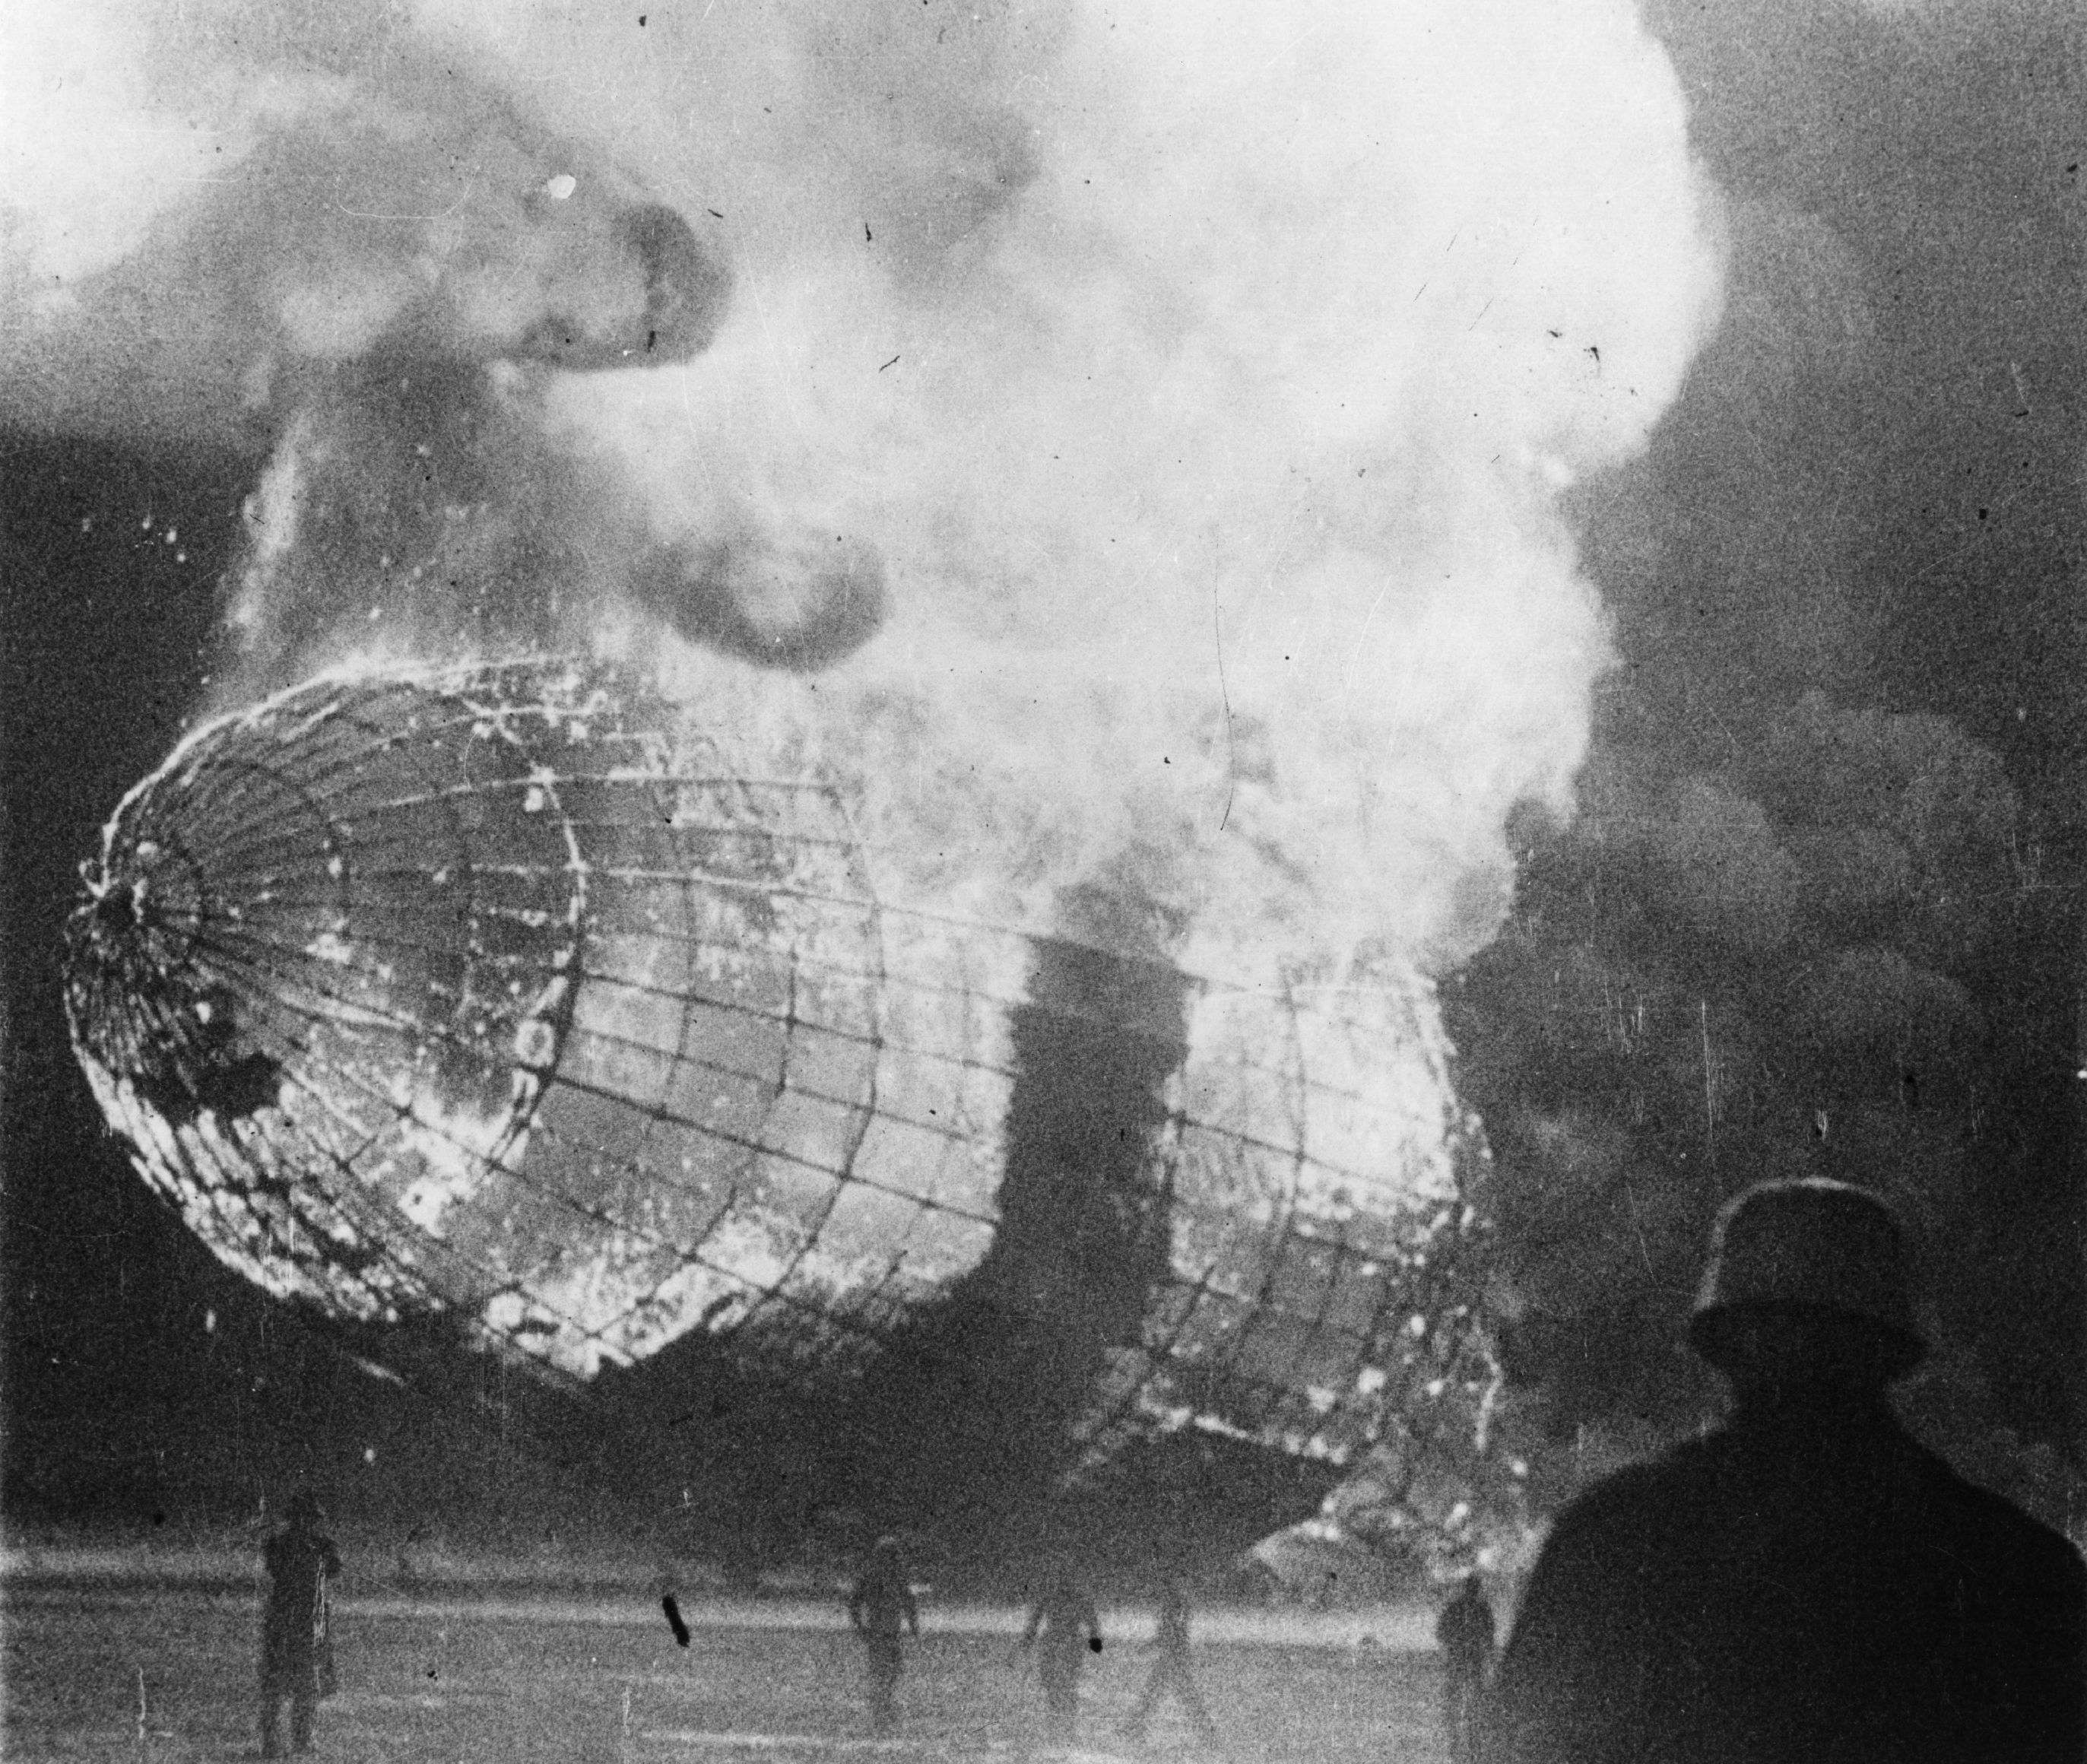 an analysis of the inferno on the arrival of the hindenburg The blazing inferno that was the german airship hindenburg is reduced to ruins as a survivor, lower right hand corner, runs to safety, may 6, 1937, after it exploded on mooring at lakehurst naval.